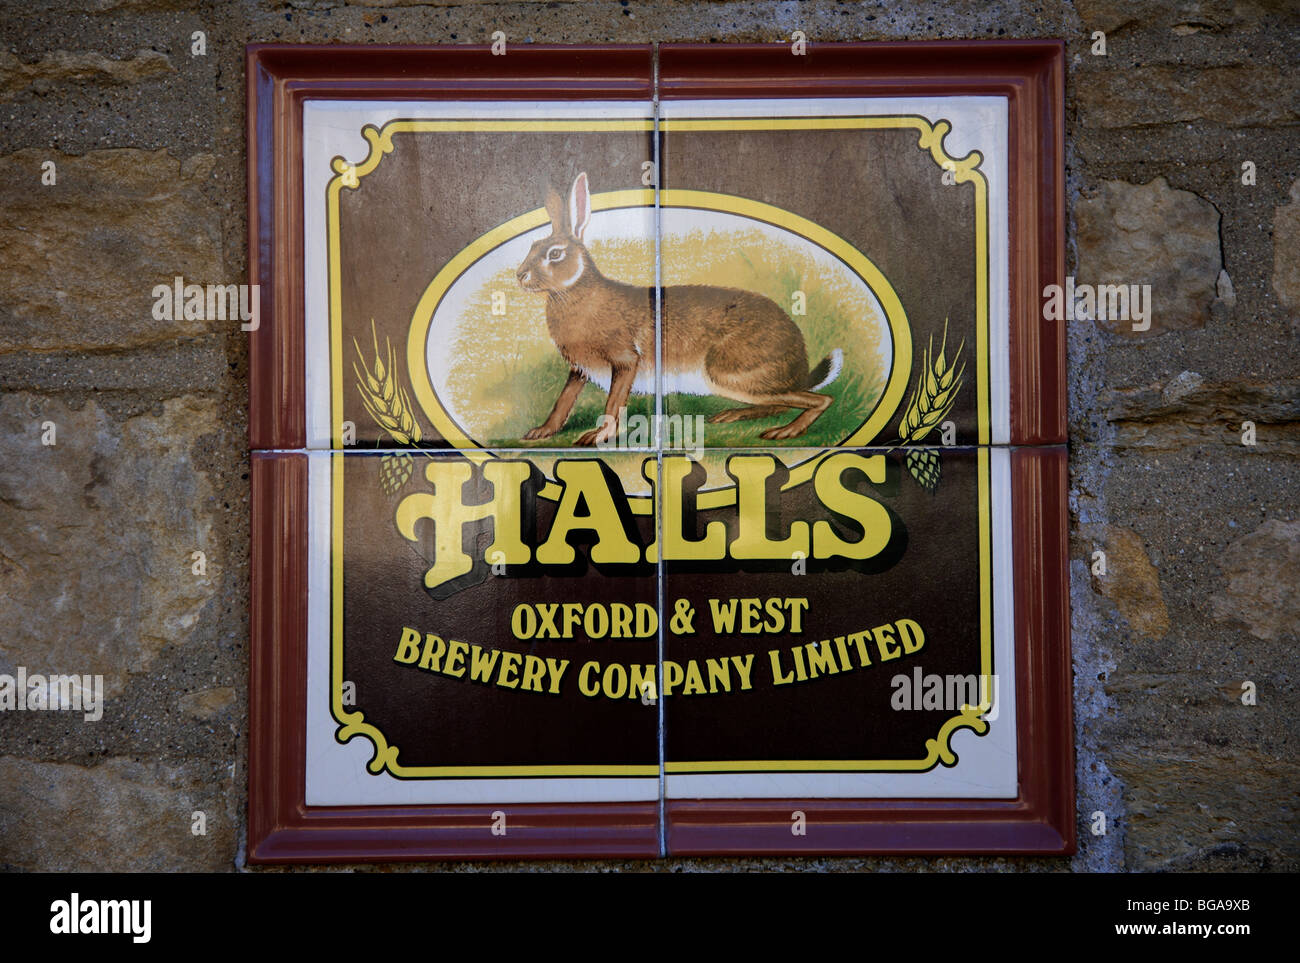 Halls Oxford and West Brewery Company Sign Charlbury Village Oxfordshire Cotswolds England UK - Stock Image